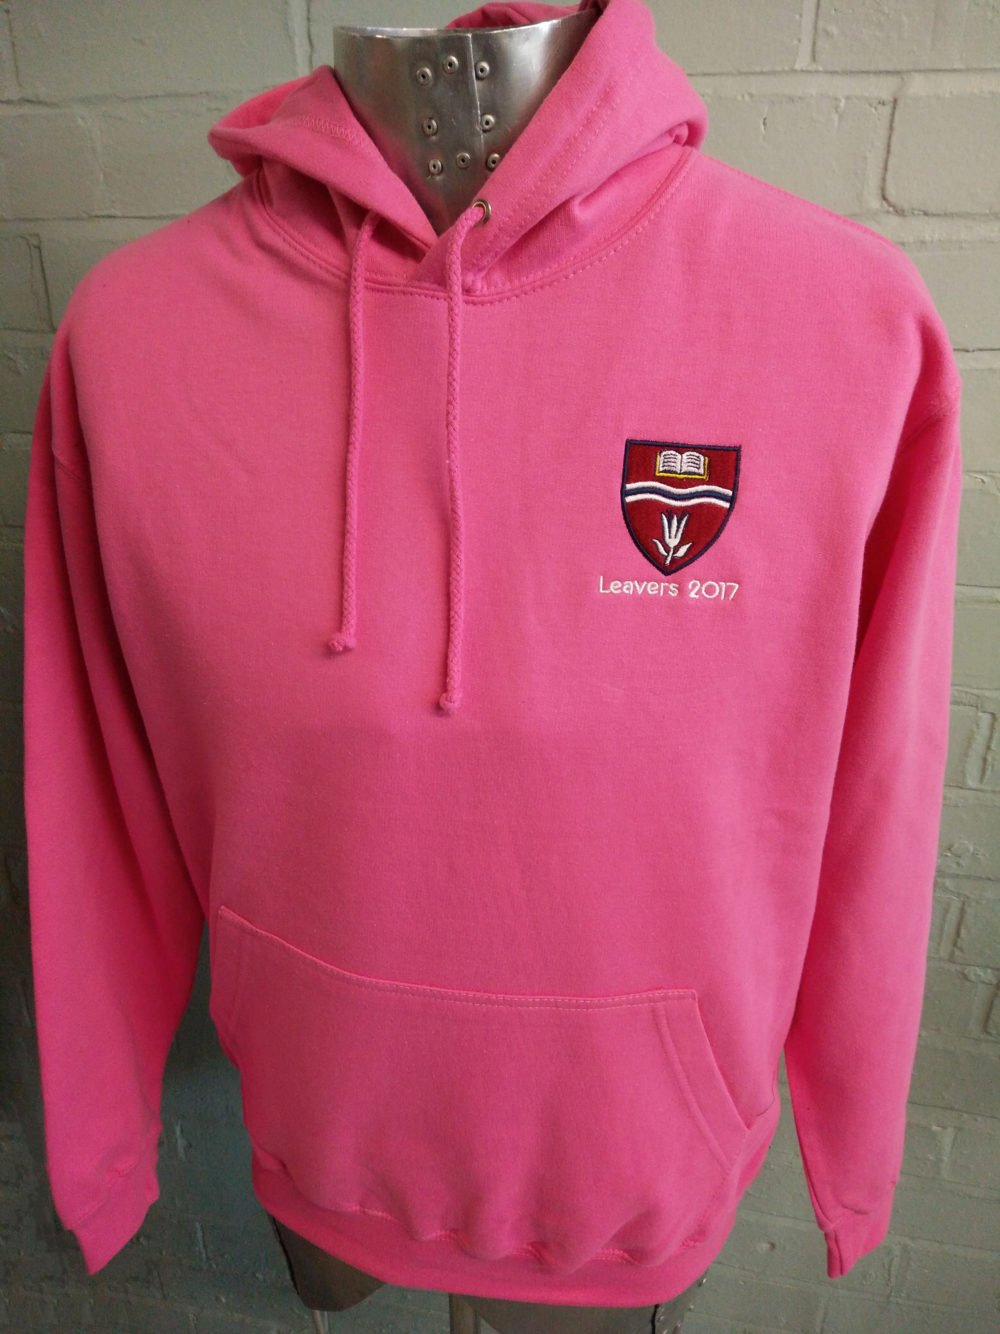 Pink Leavers Hoodies 2017